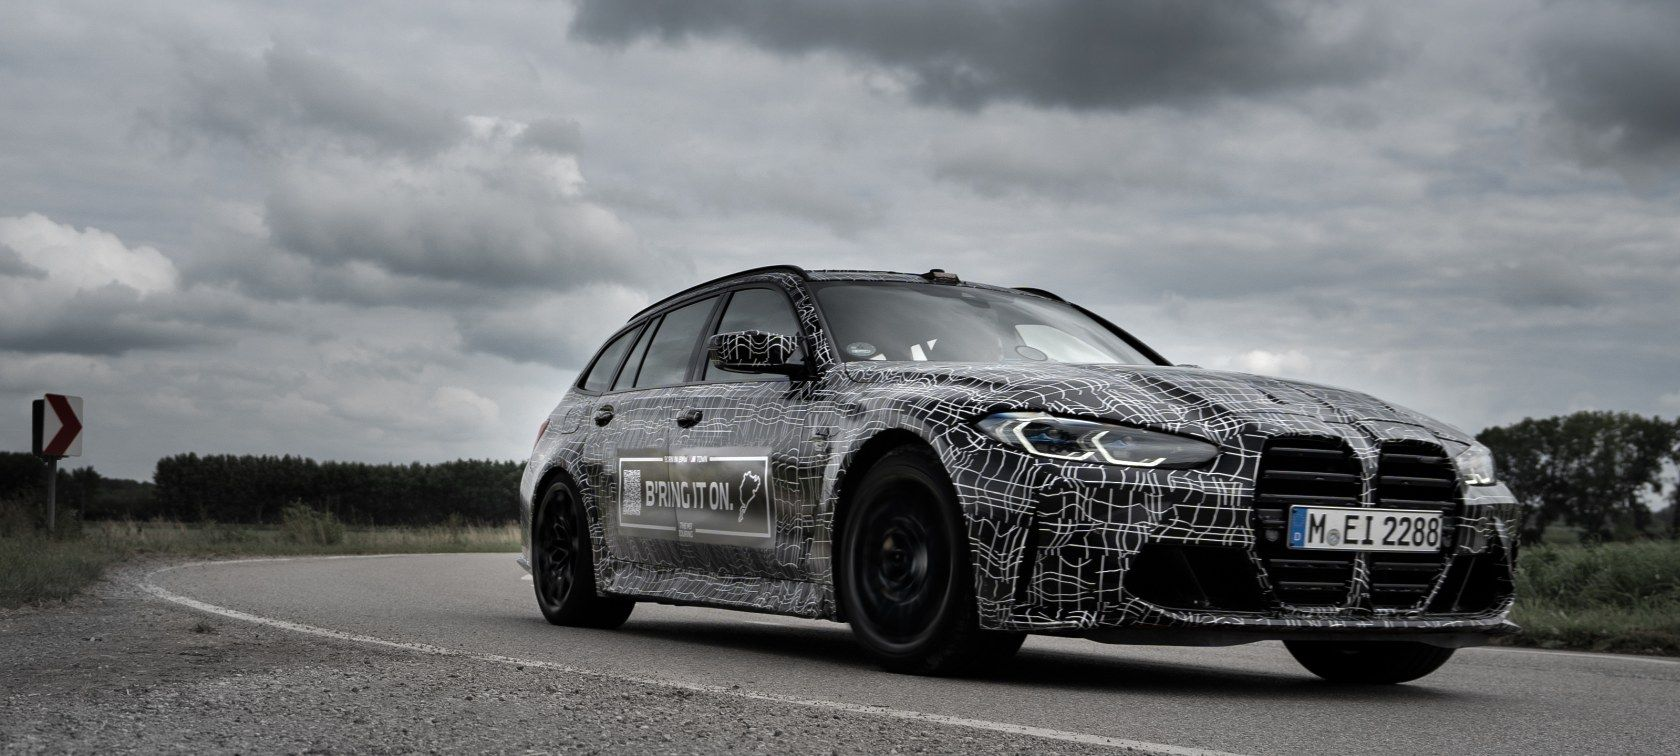 A BMW M3 Touring shows off the new BMW Kidney Grille while wrapped in camo, shot from the front 3/4